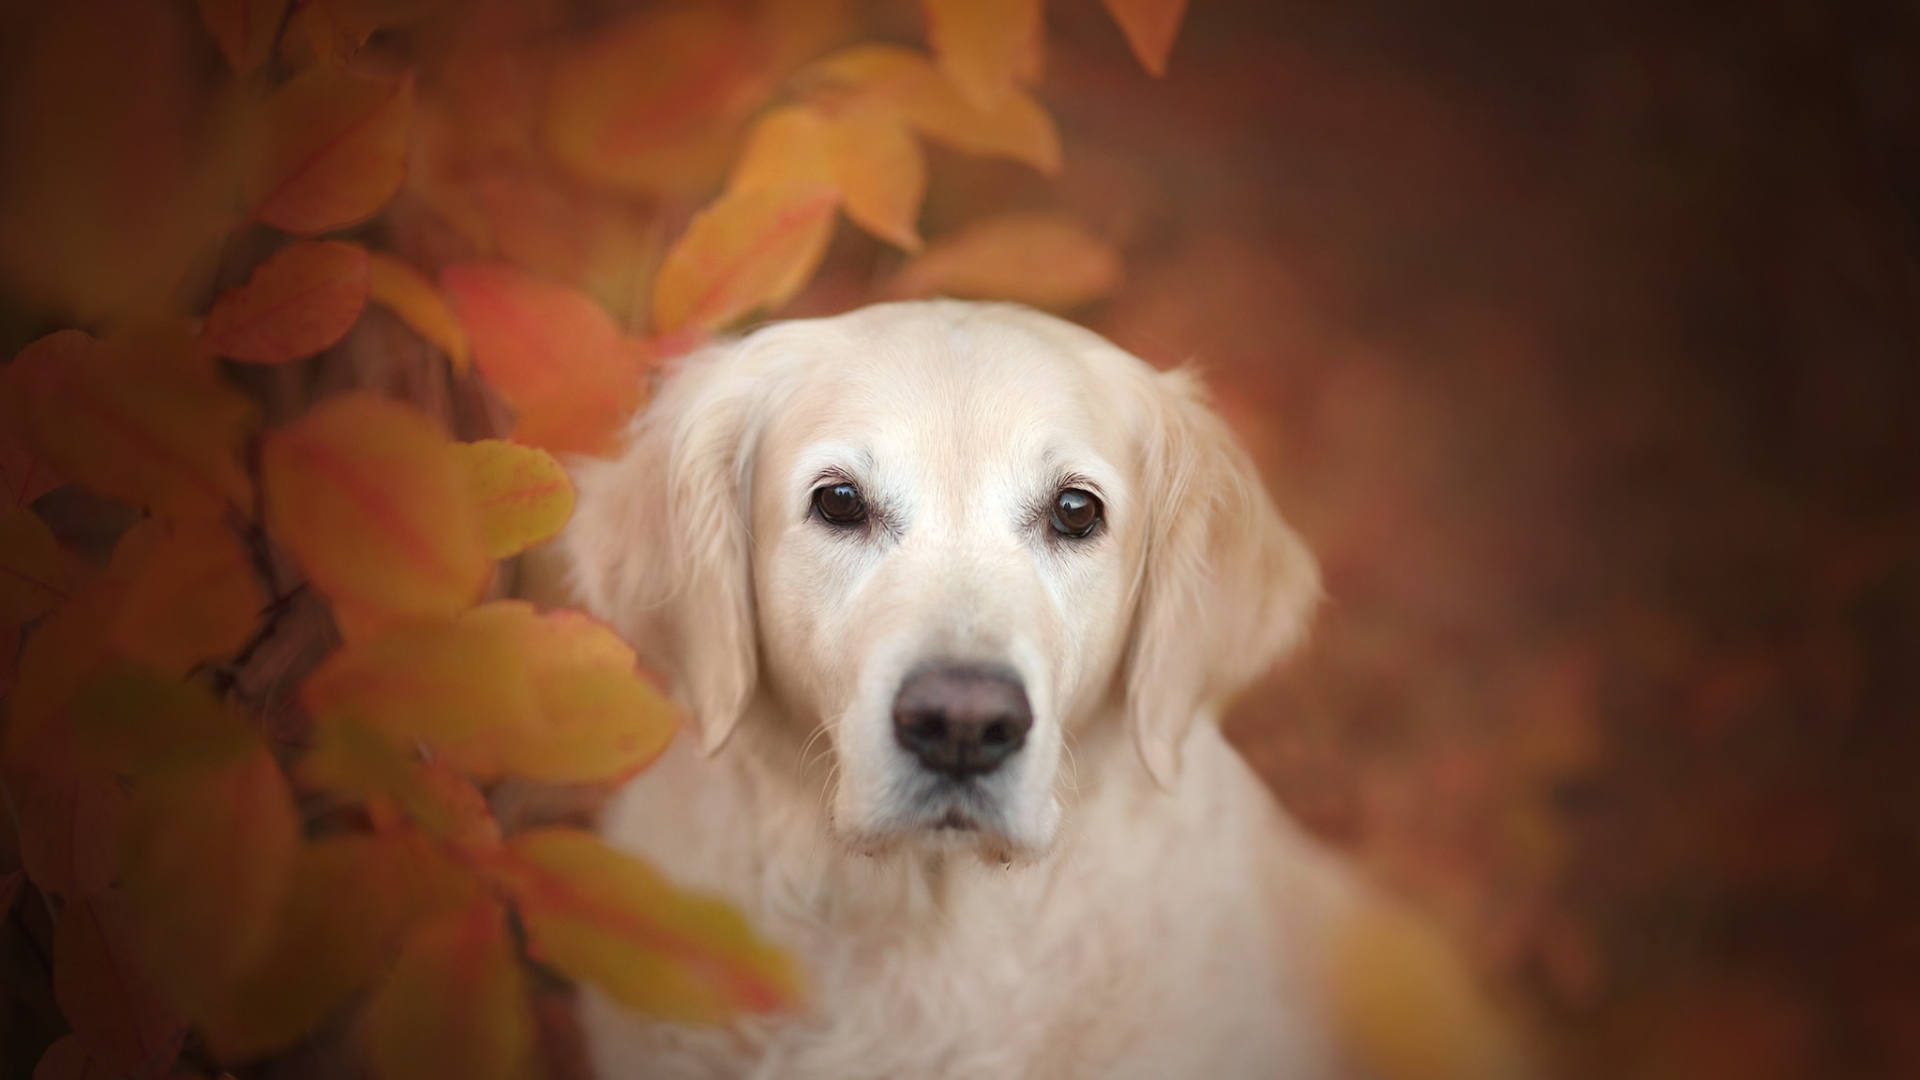 1920x1080 Golden Retriever Dog 1080p Laptop Full Hd Wallpaper Hd Animals 4k Wallpapers Images Photos And Background